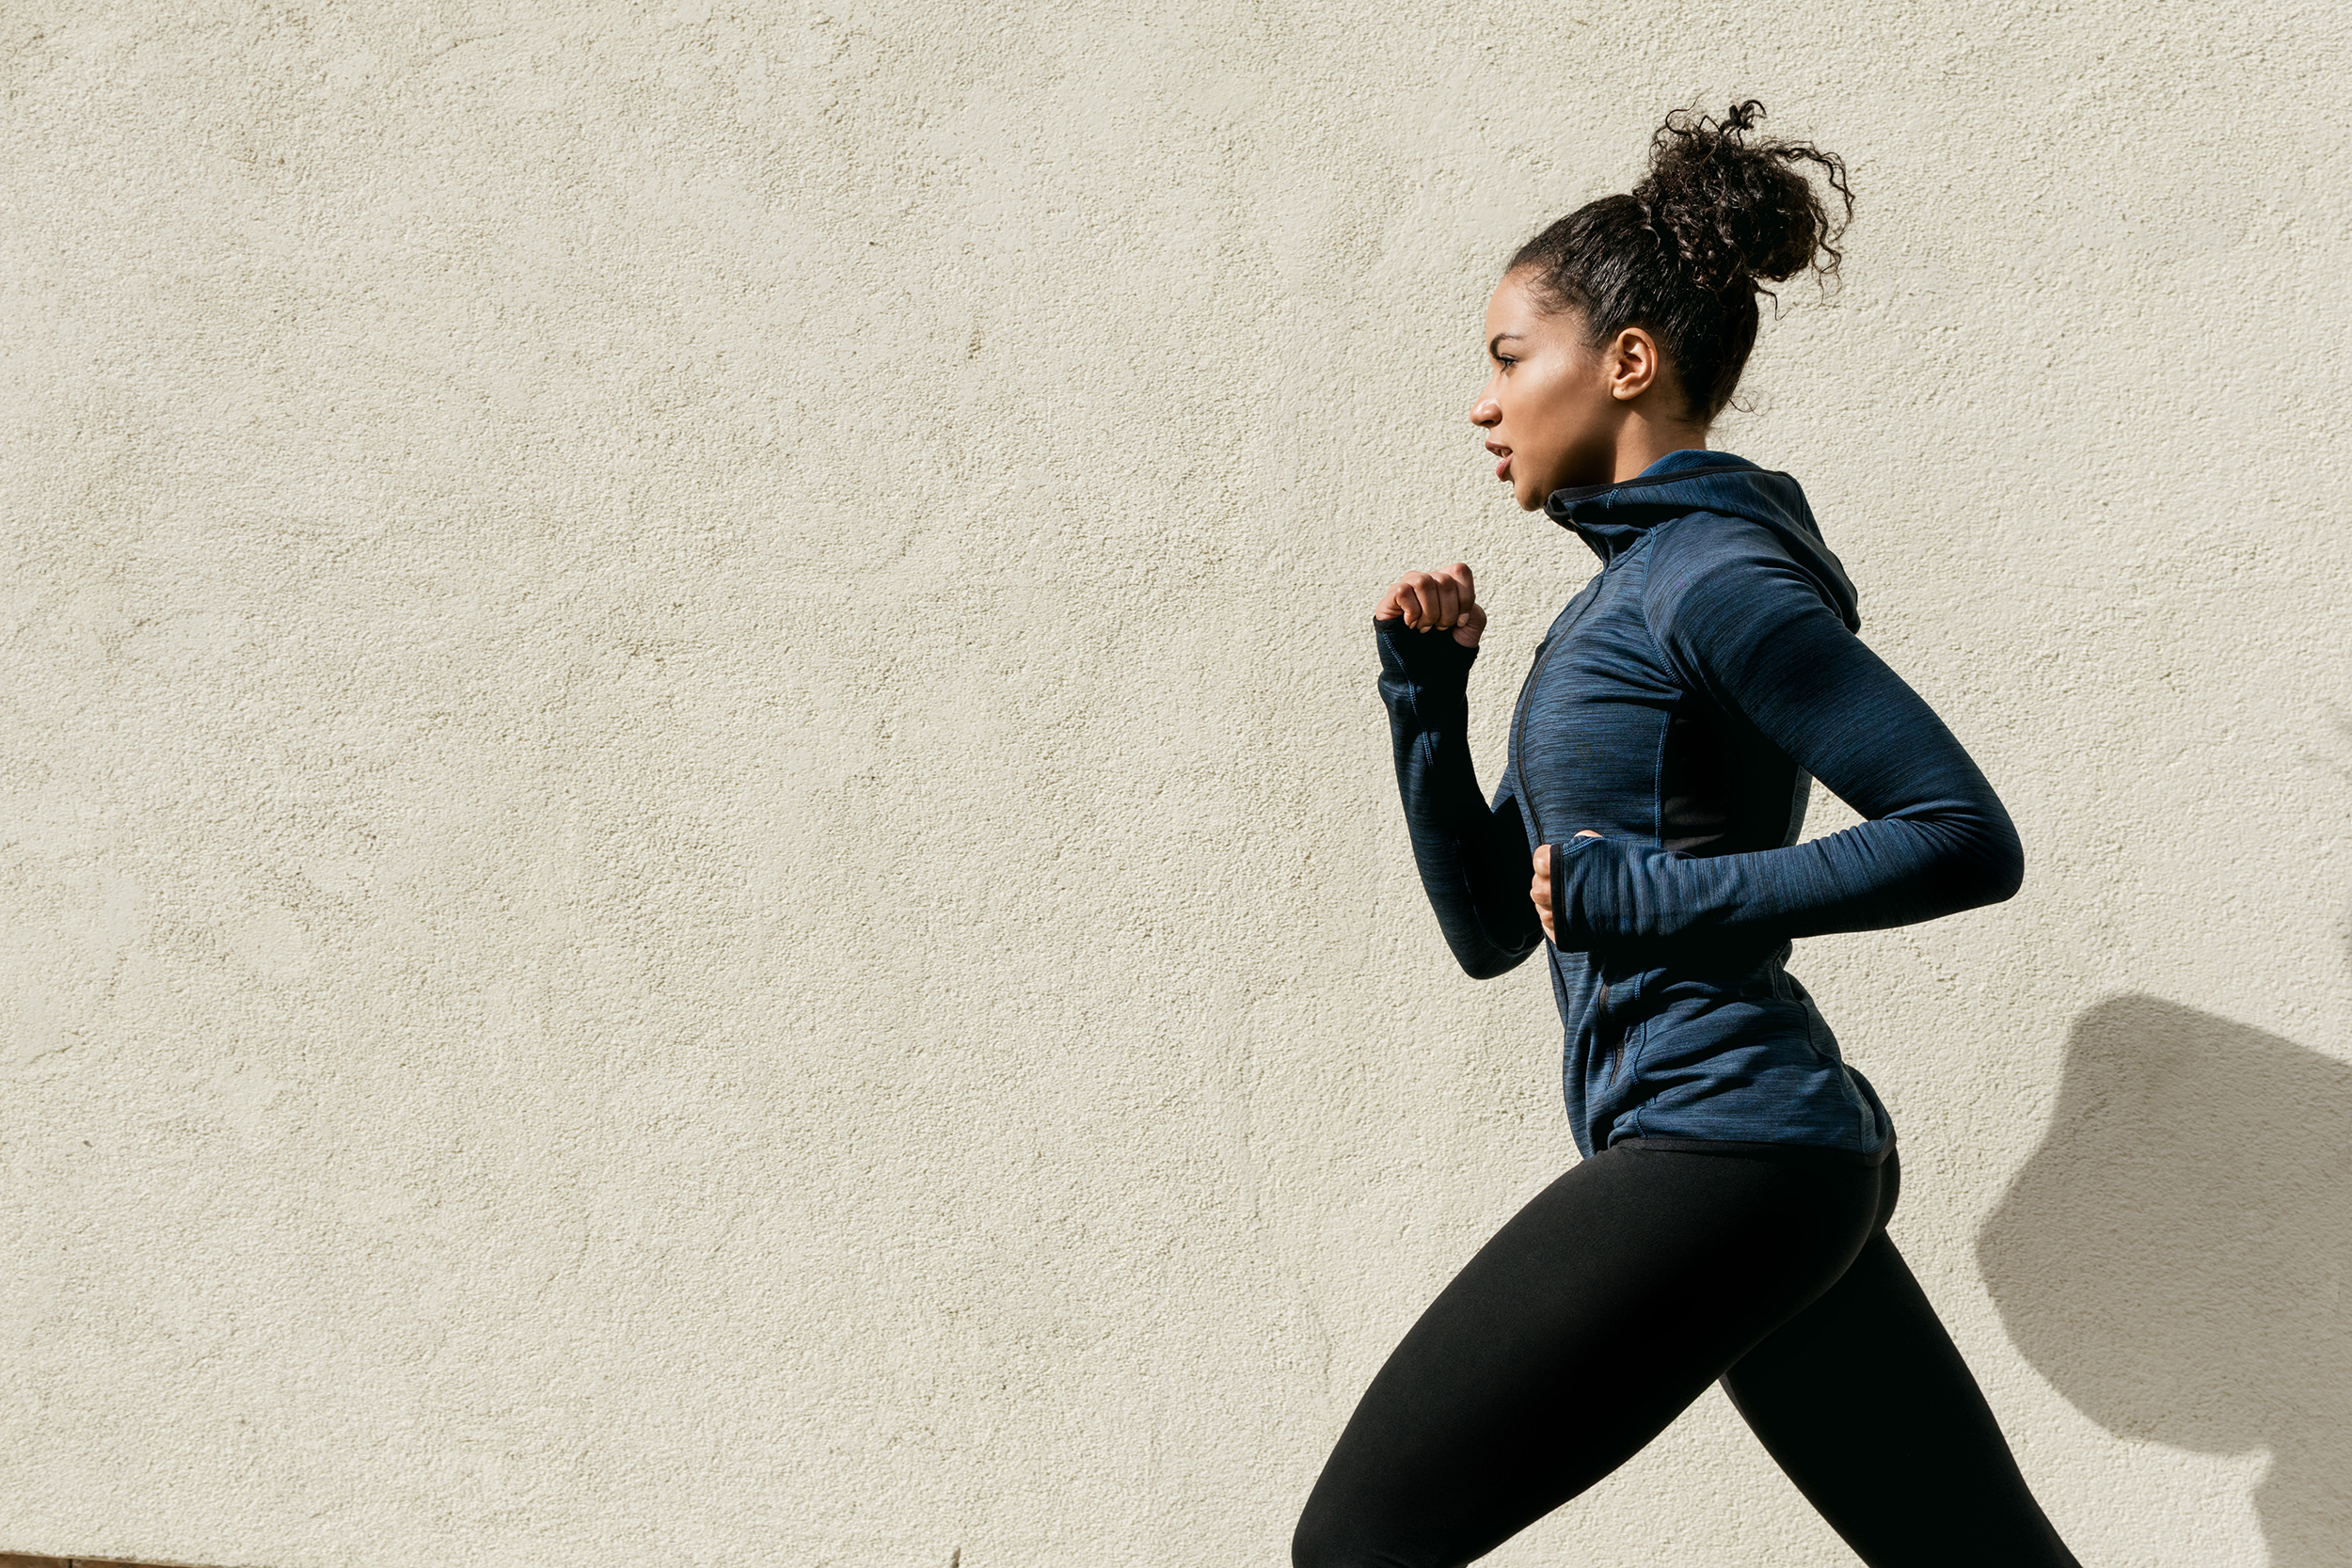 Woman Running, Working Out Outside